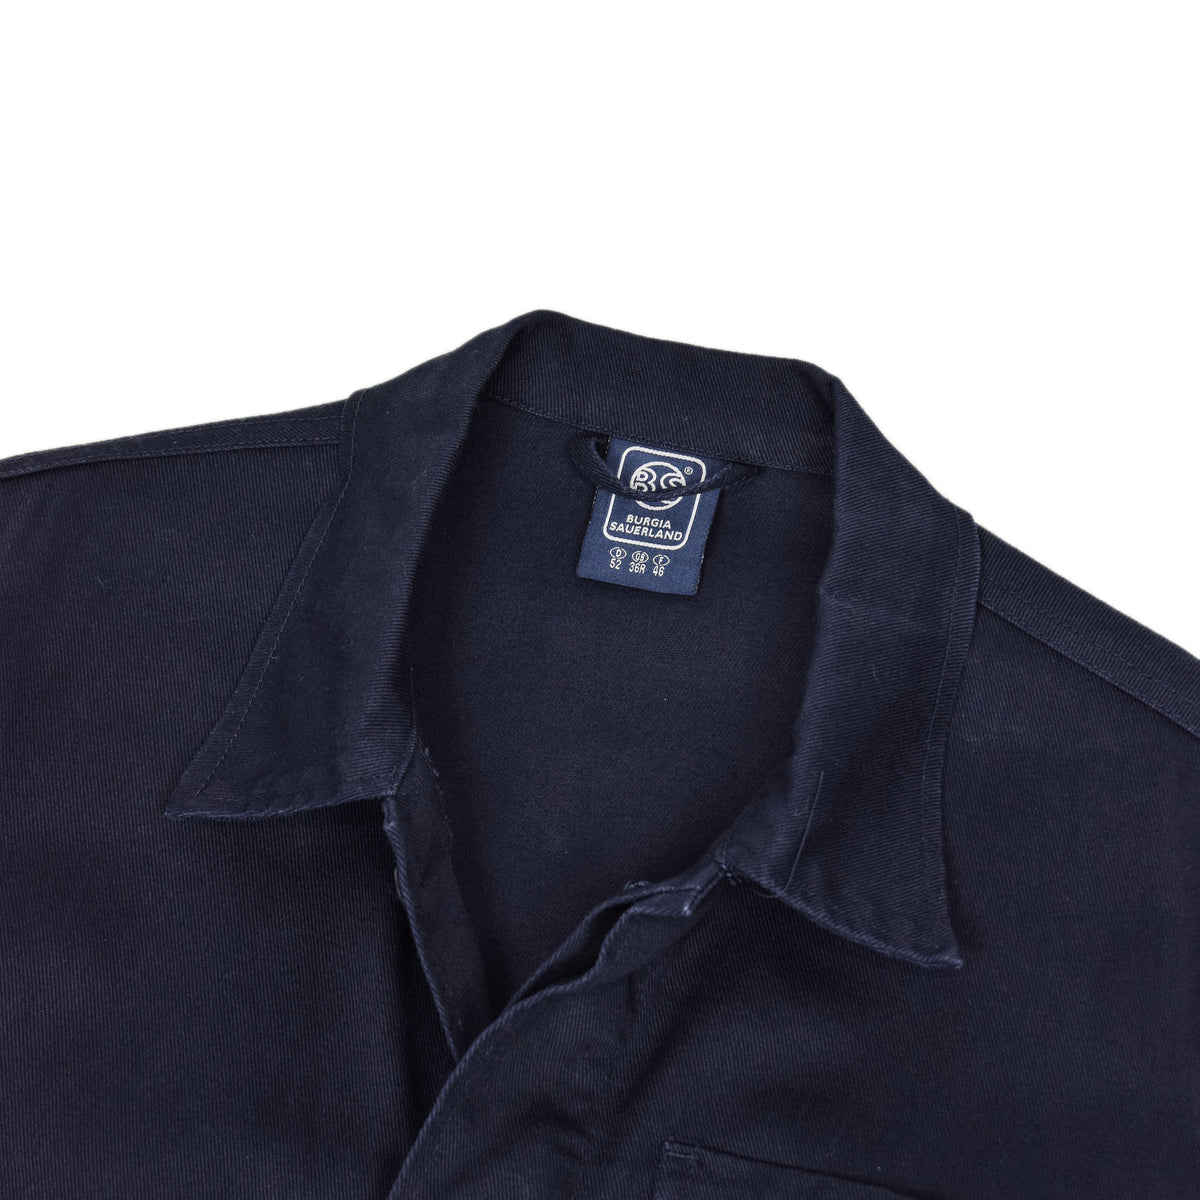 Vintage Navy Blue French Style Worker Sanforized Cotton Chore Jacket L / XL collar